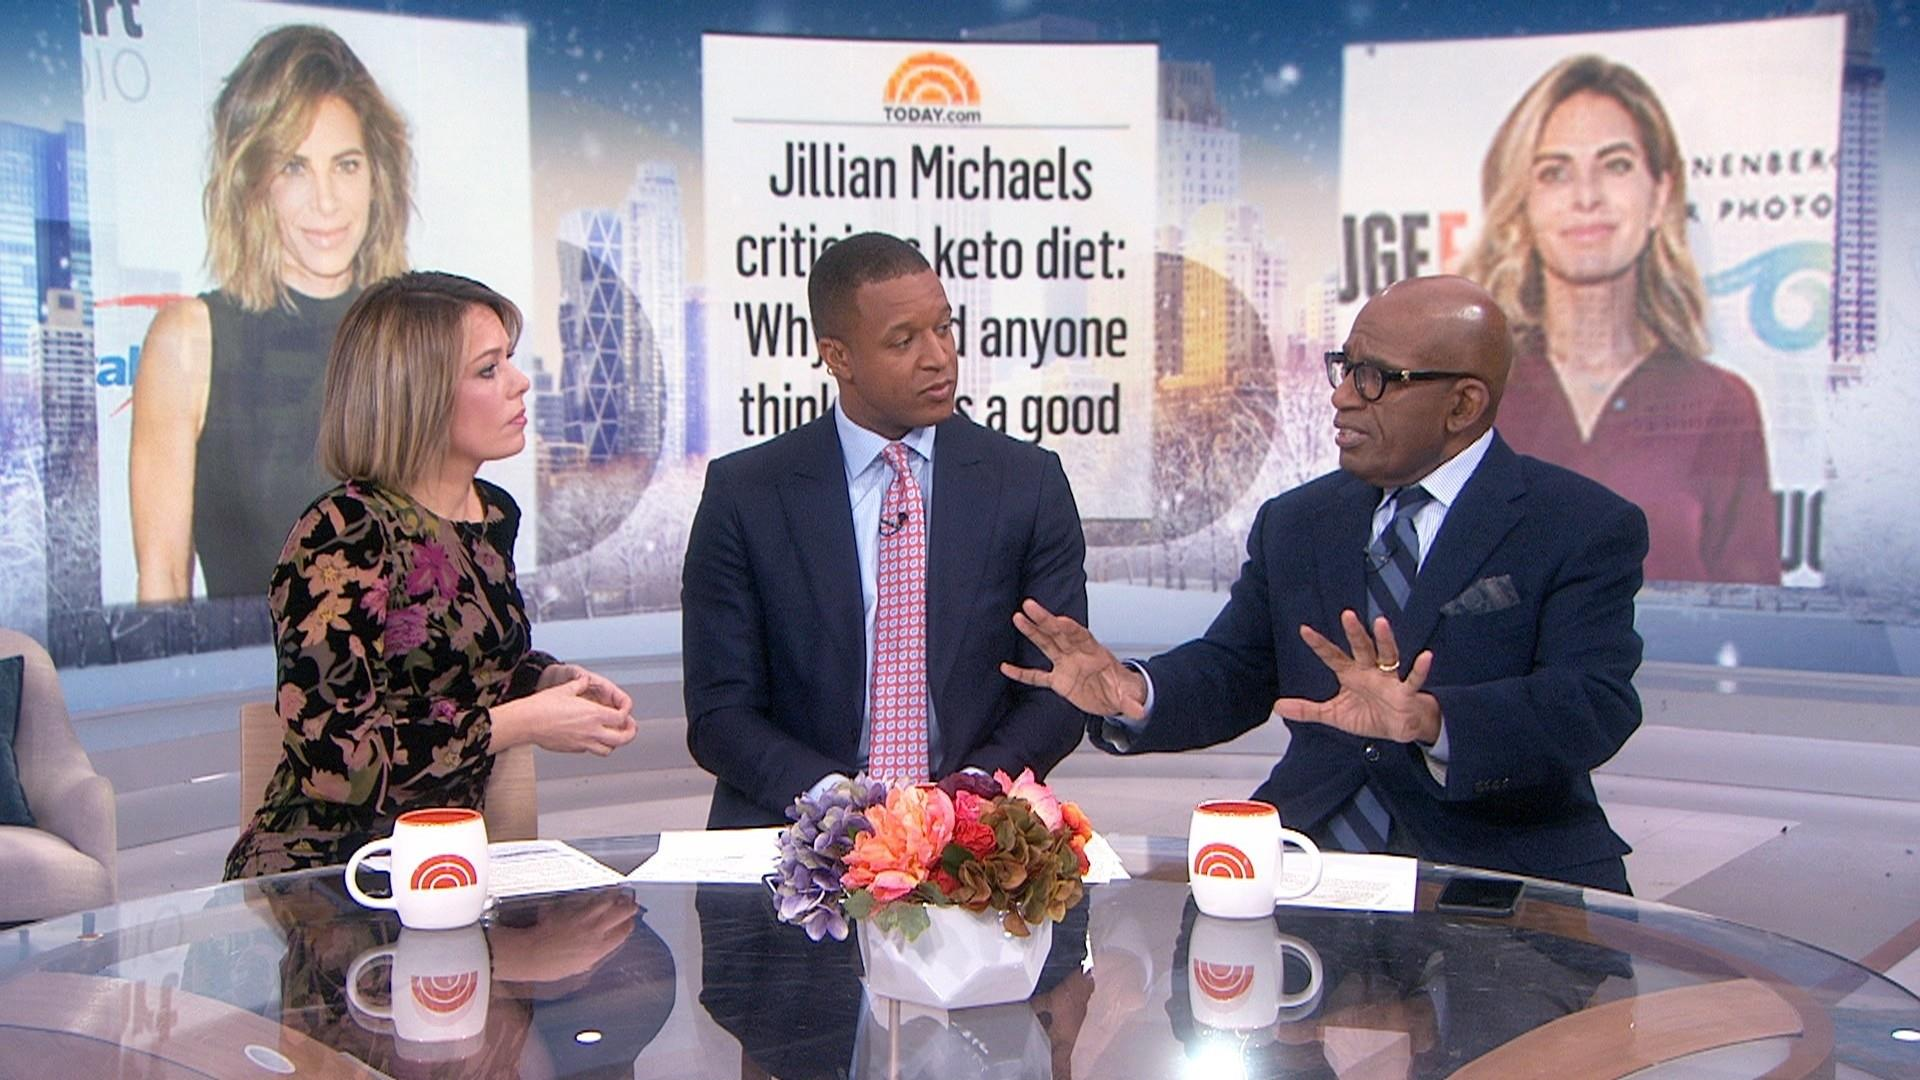 al roker and keto diet